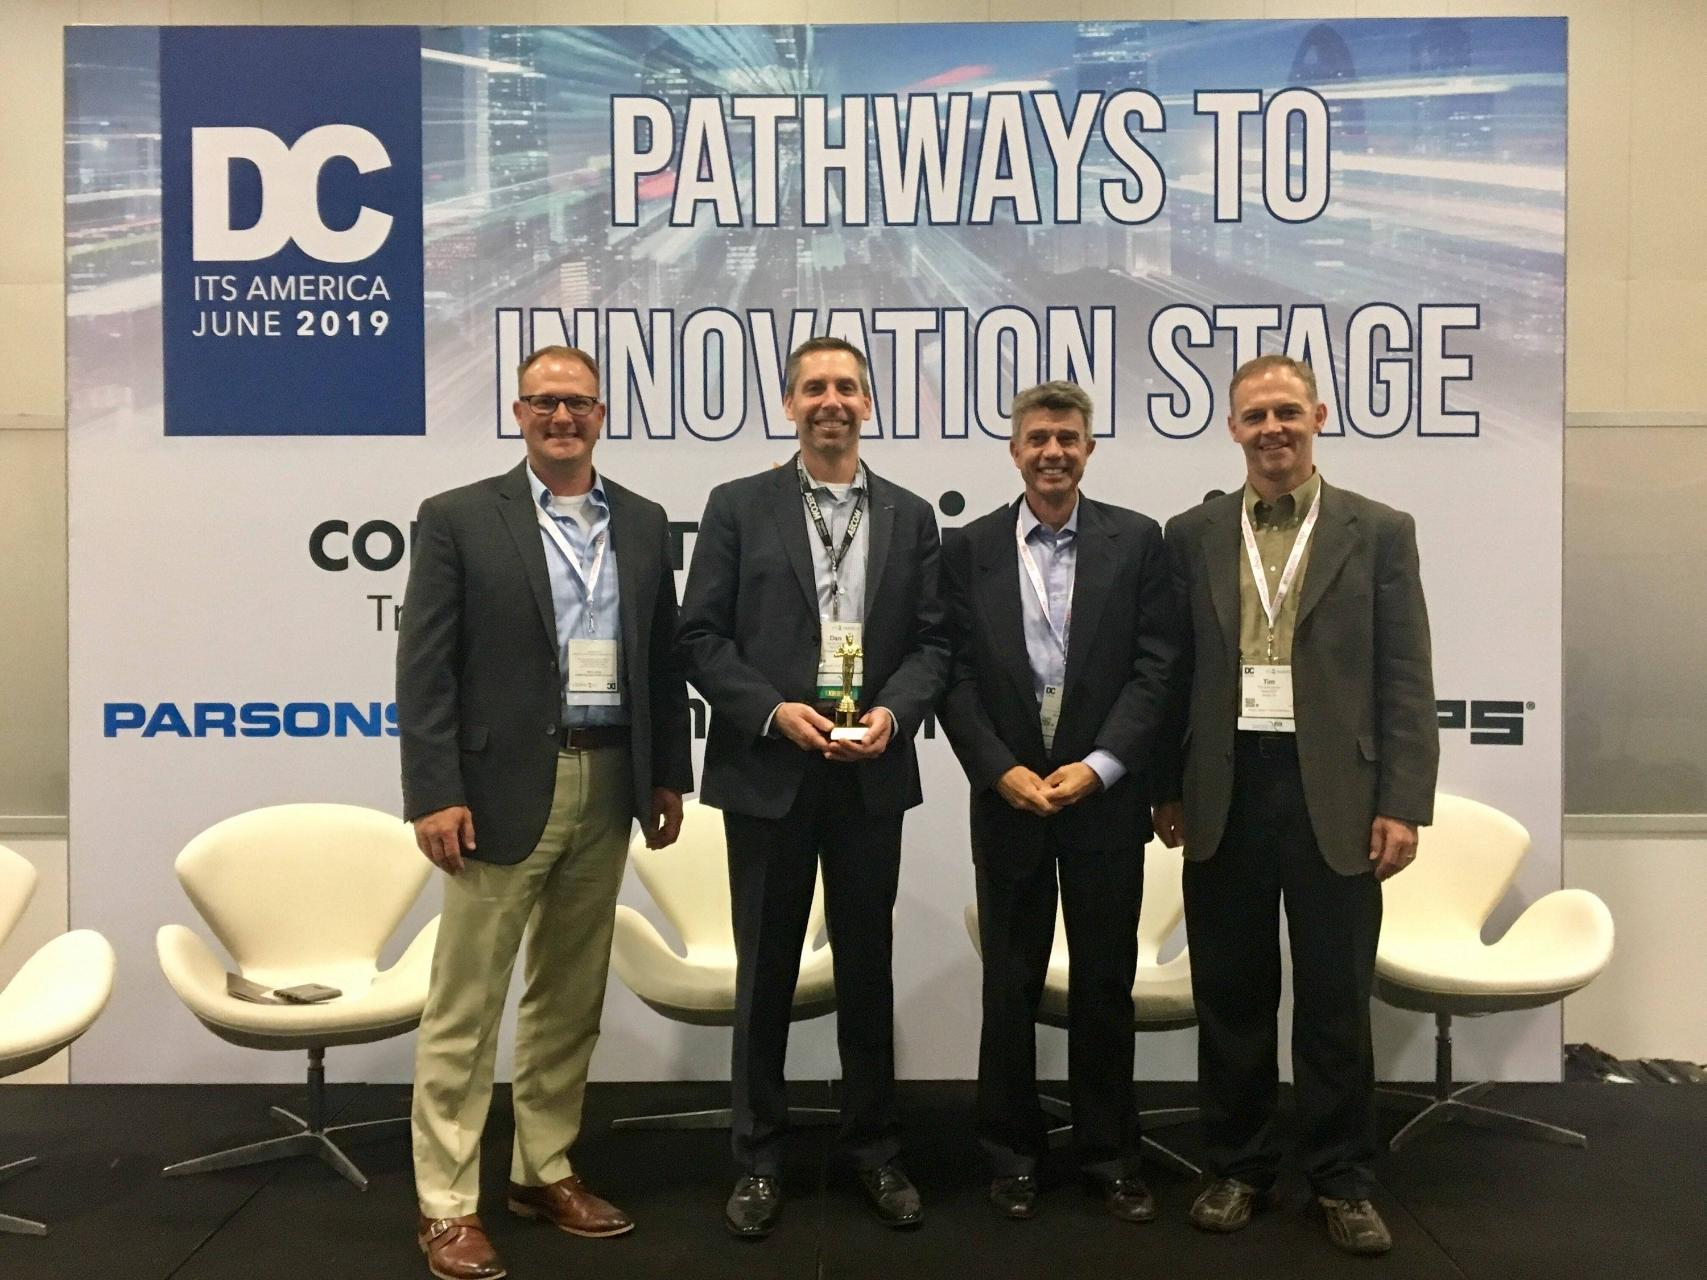 eX² Technology, Truck Specialized Parking Service (TSPS) and AECOM win the award for best Innovation Stage Presentation at the 2019 ITS America Annual Meeting. -